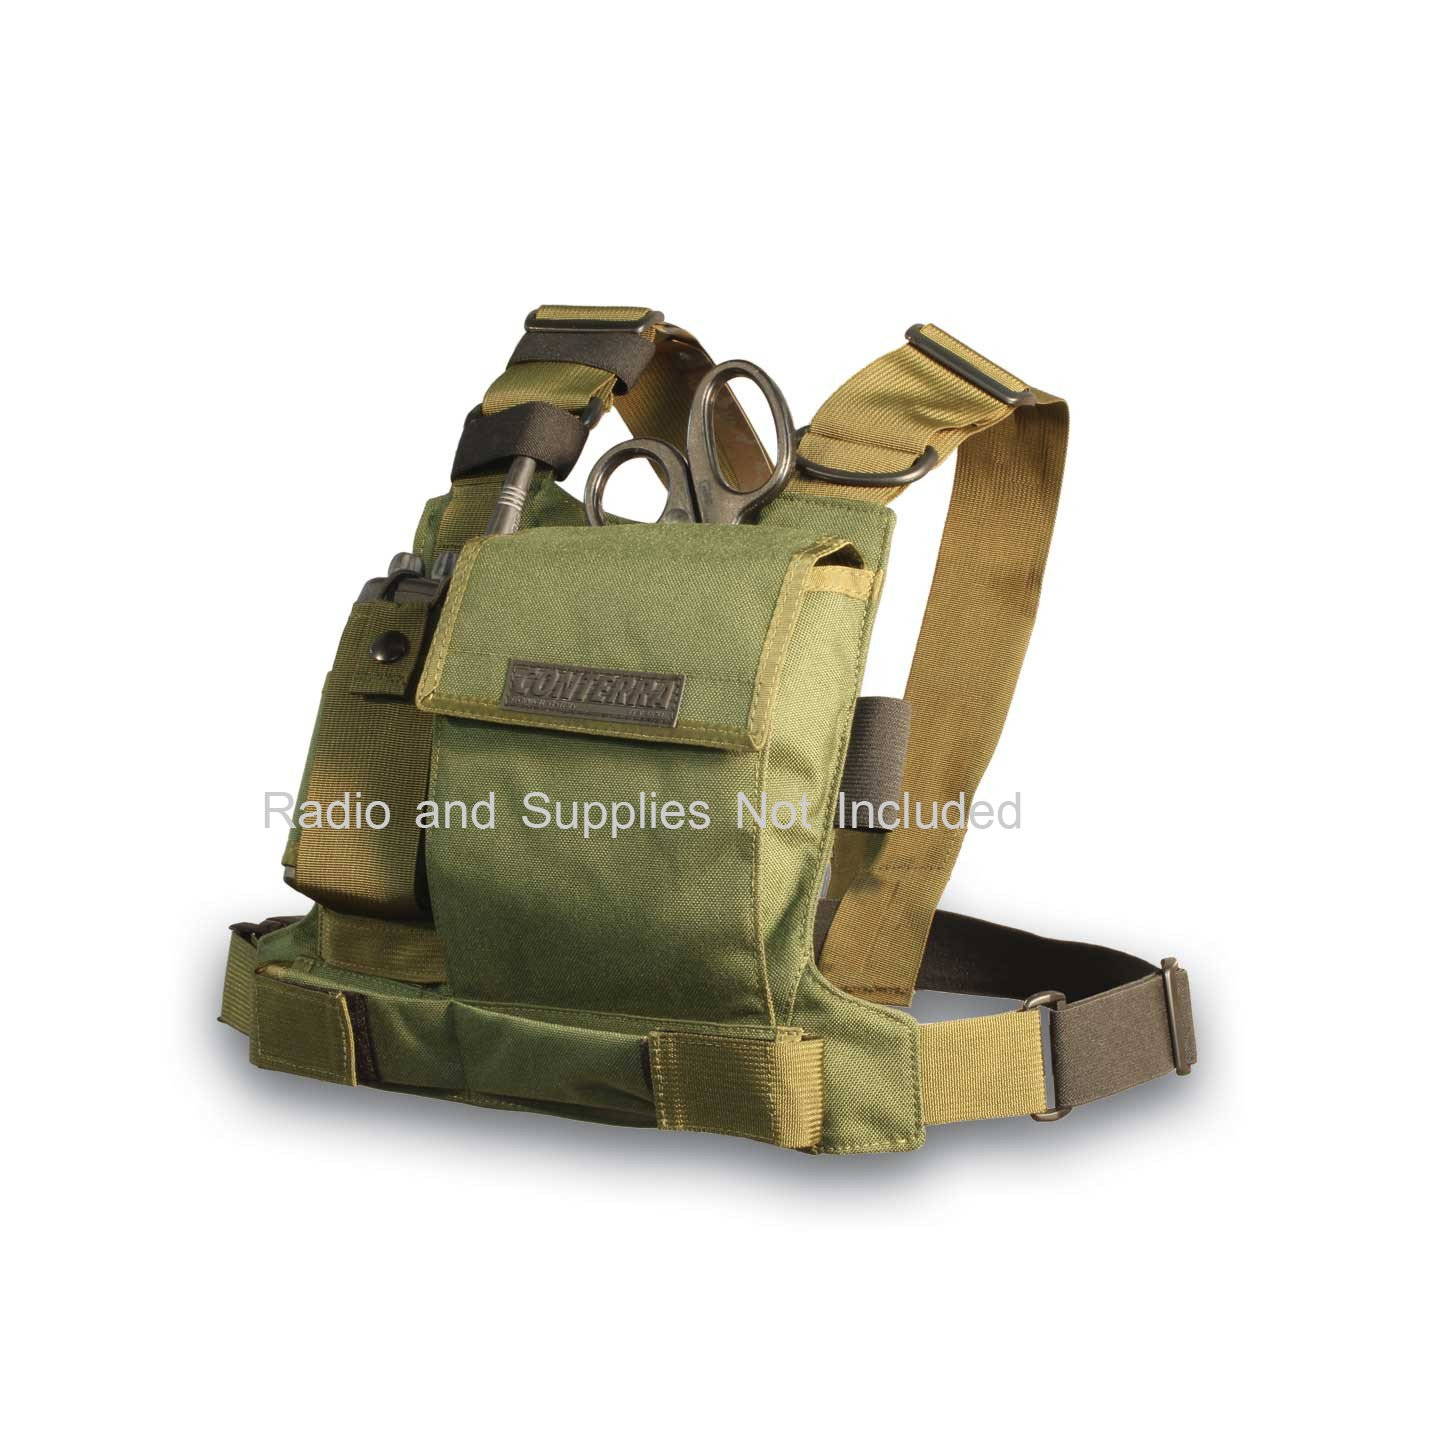 Conterra Tool Chest Radio Chest Harness (MILSPEC Green)